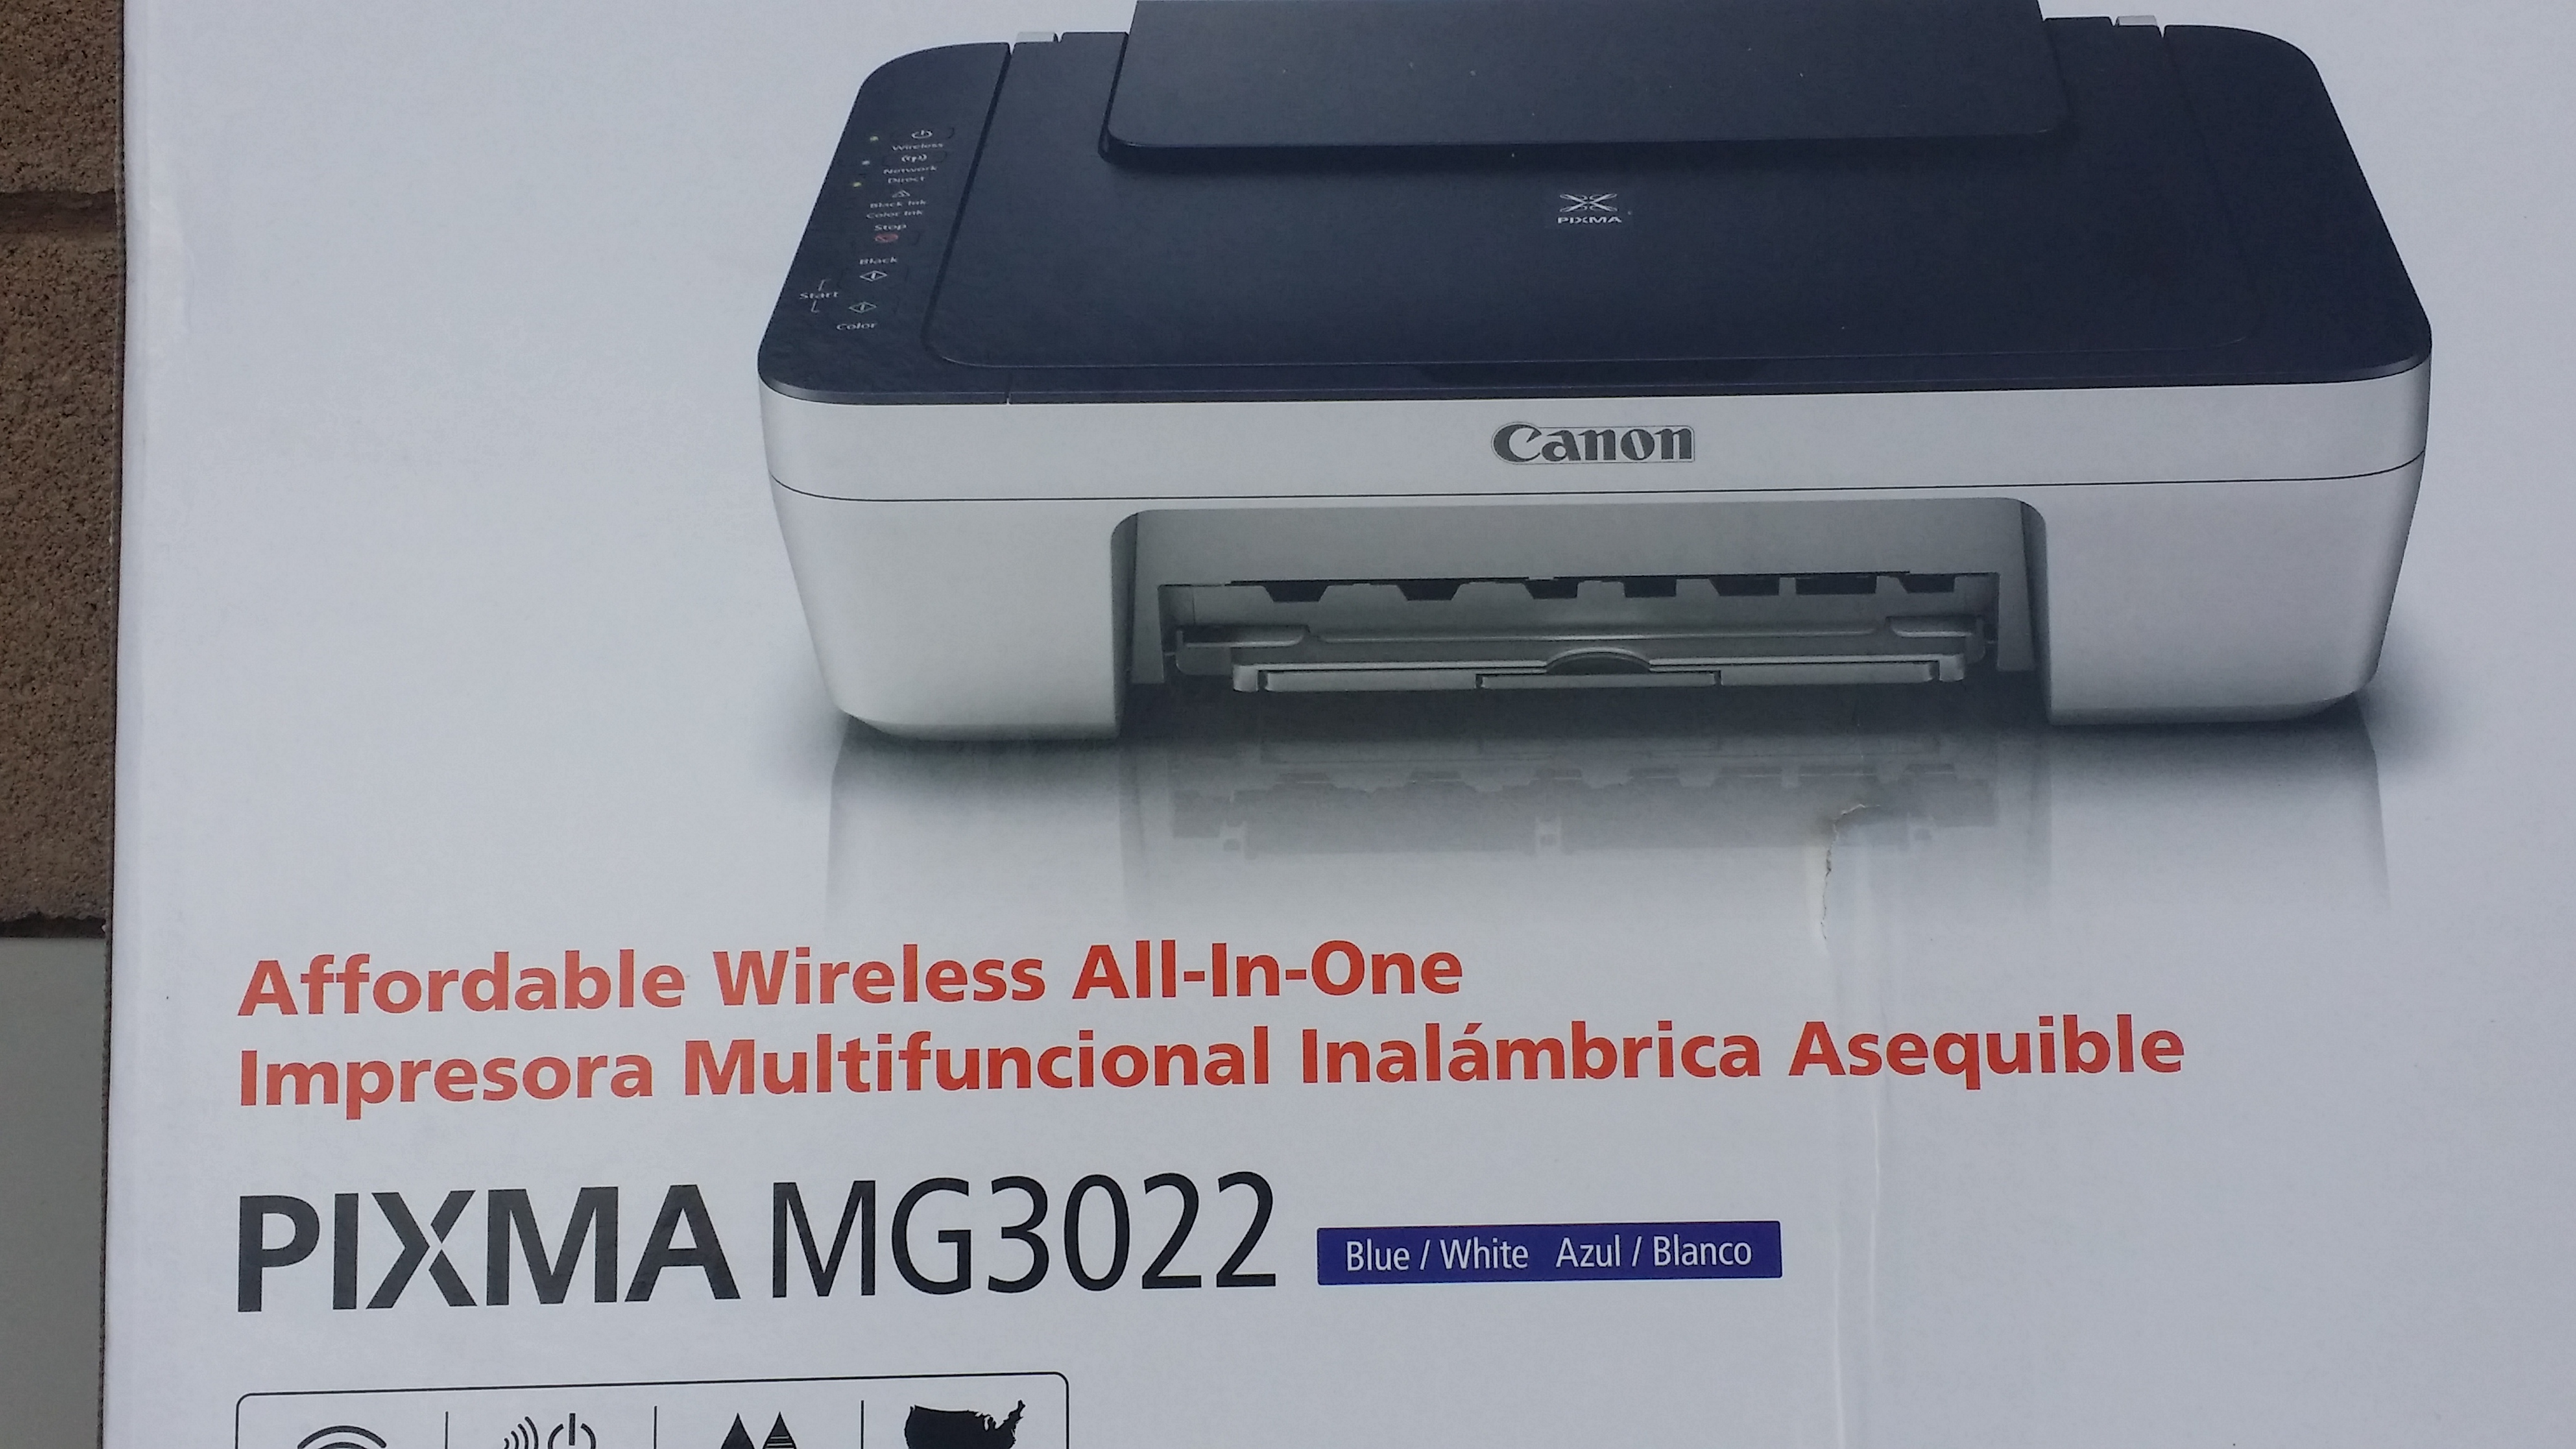 Picture Information Have one to sell? Sell now Details about Canon PIXMA MG3022 white/blue Wireless All-In-One Inkjet Printer